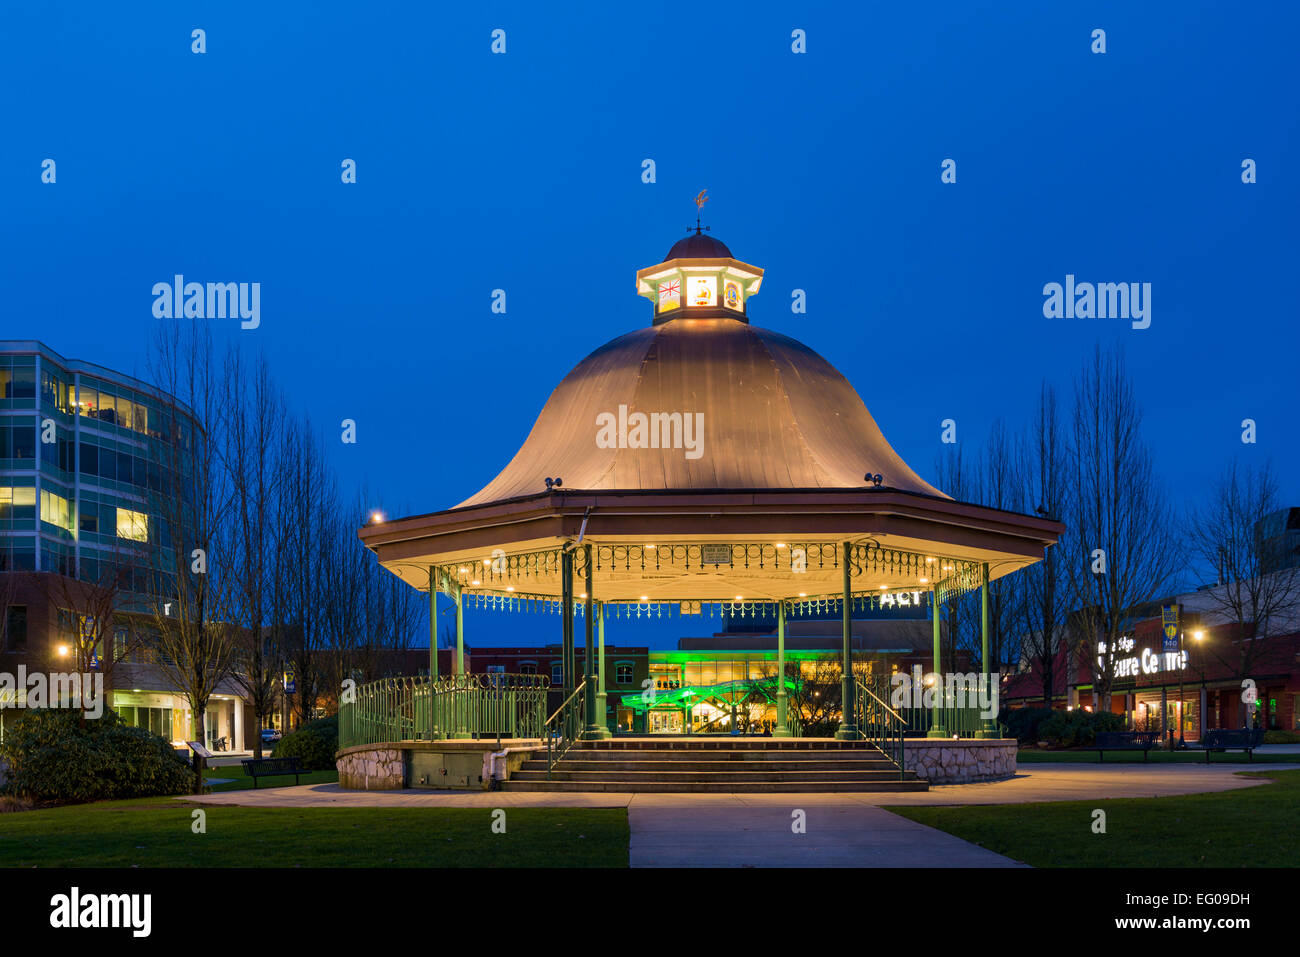 Bandstand at Memorial Peace Park, District of Maple Ridge, British Columbia, Canada - Stock Image